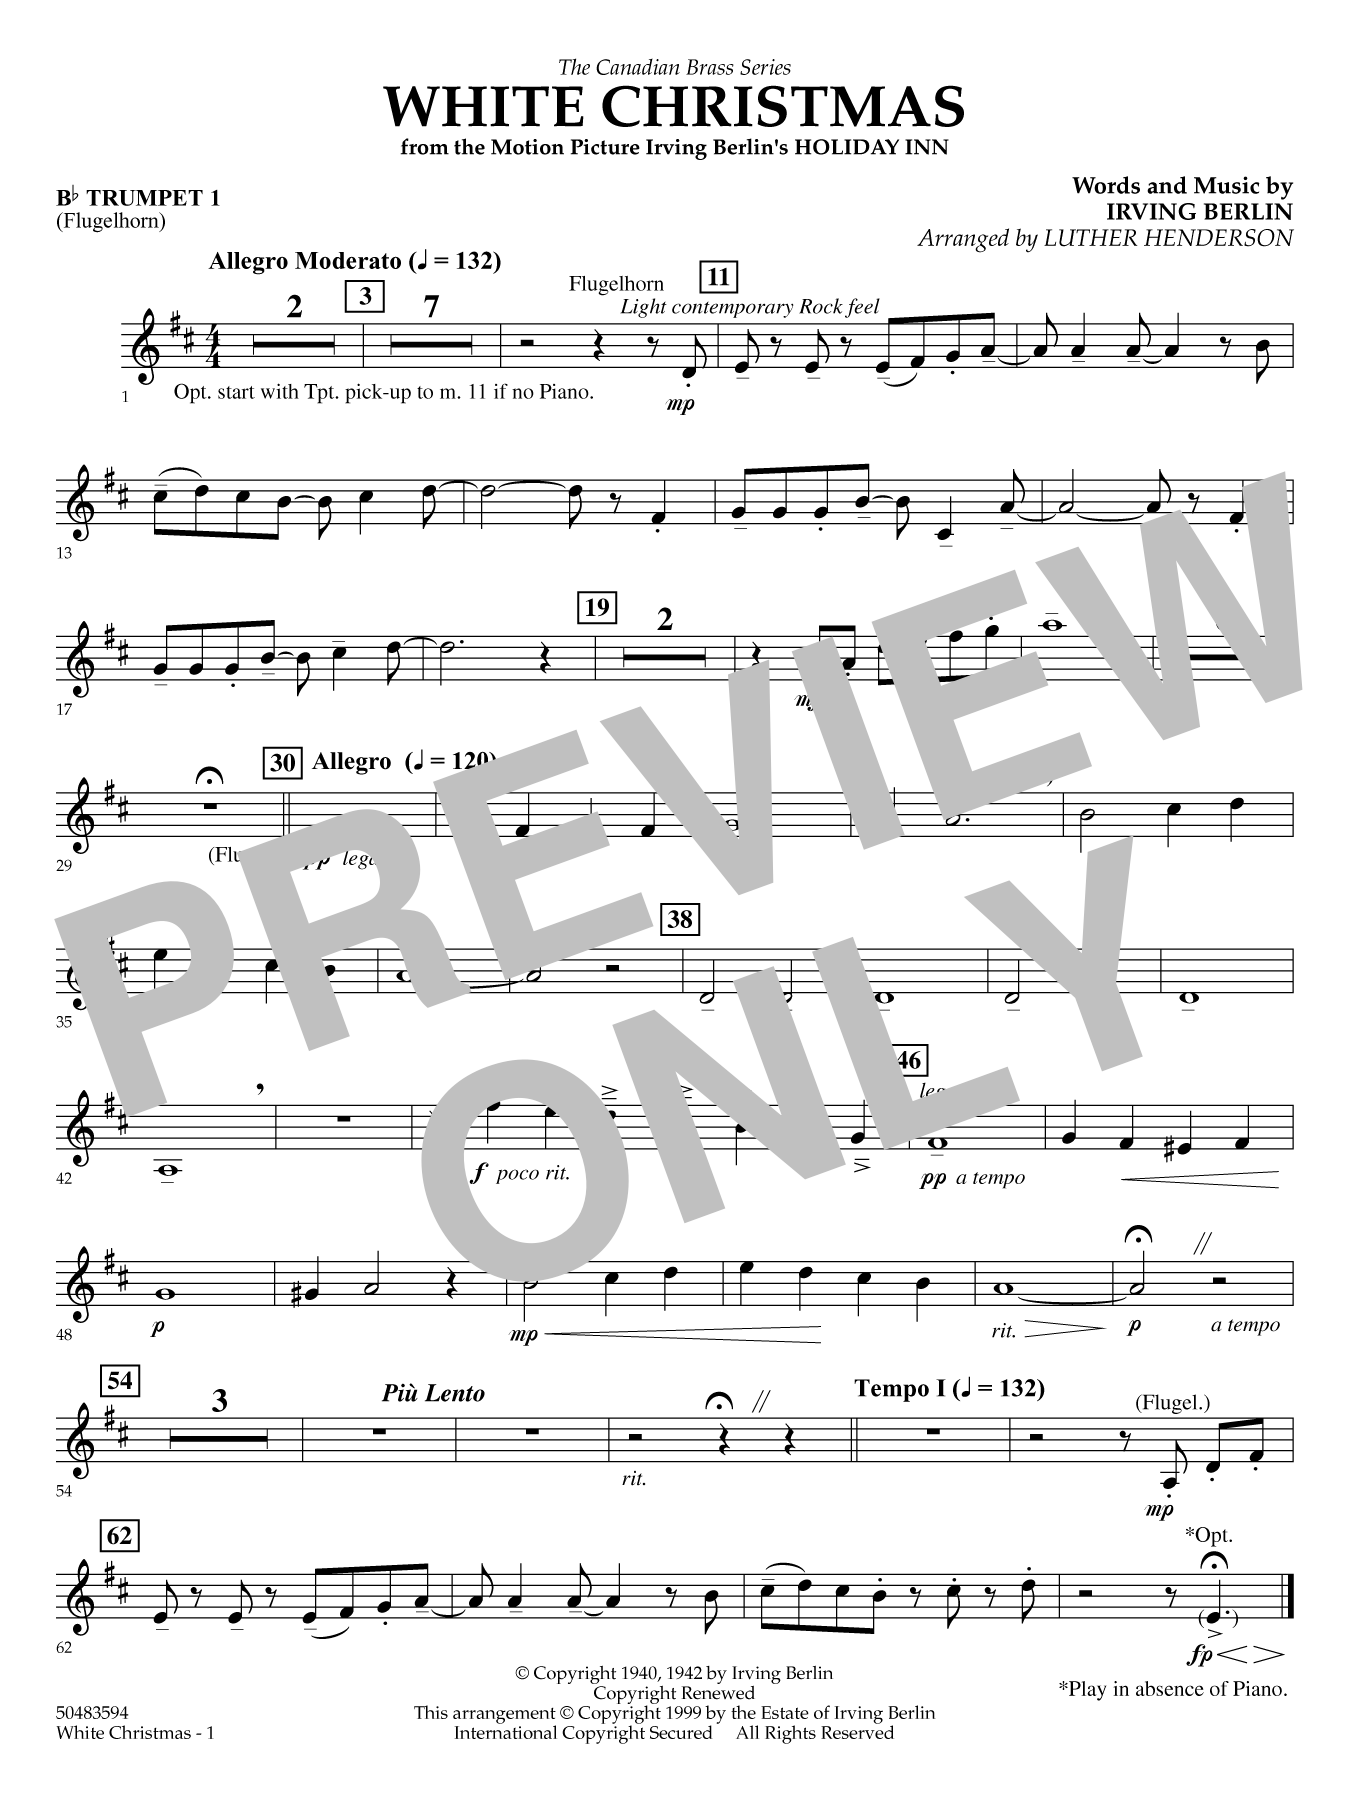 White Christmas - Trumpet 1 (opt. Flugelhorn) Sheet Music